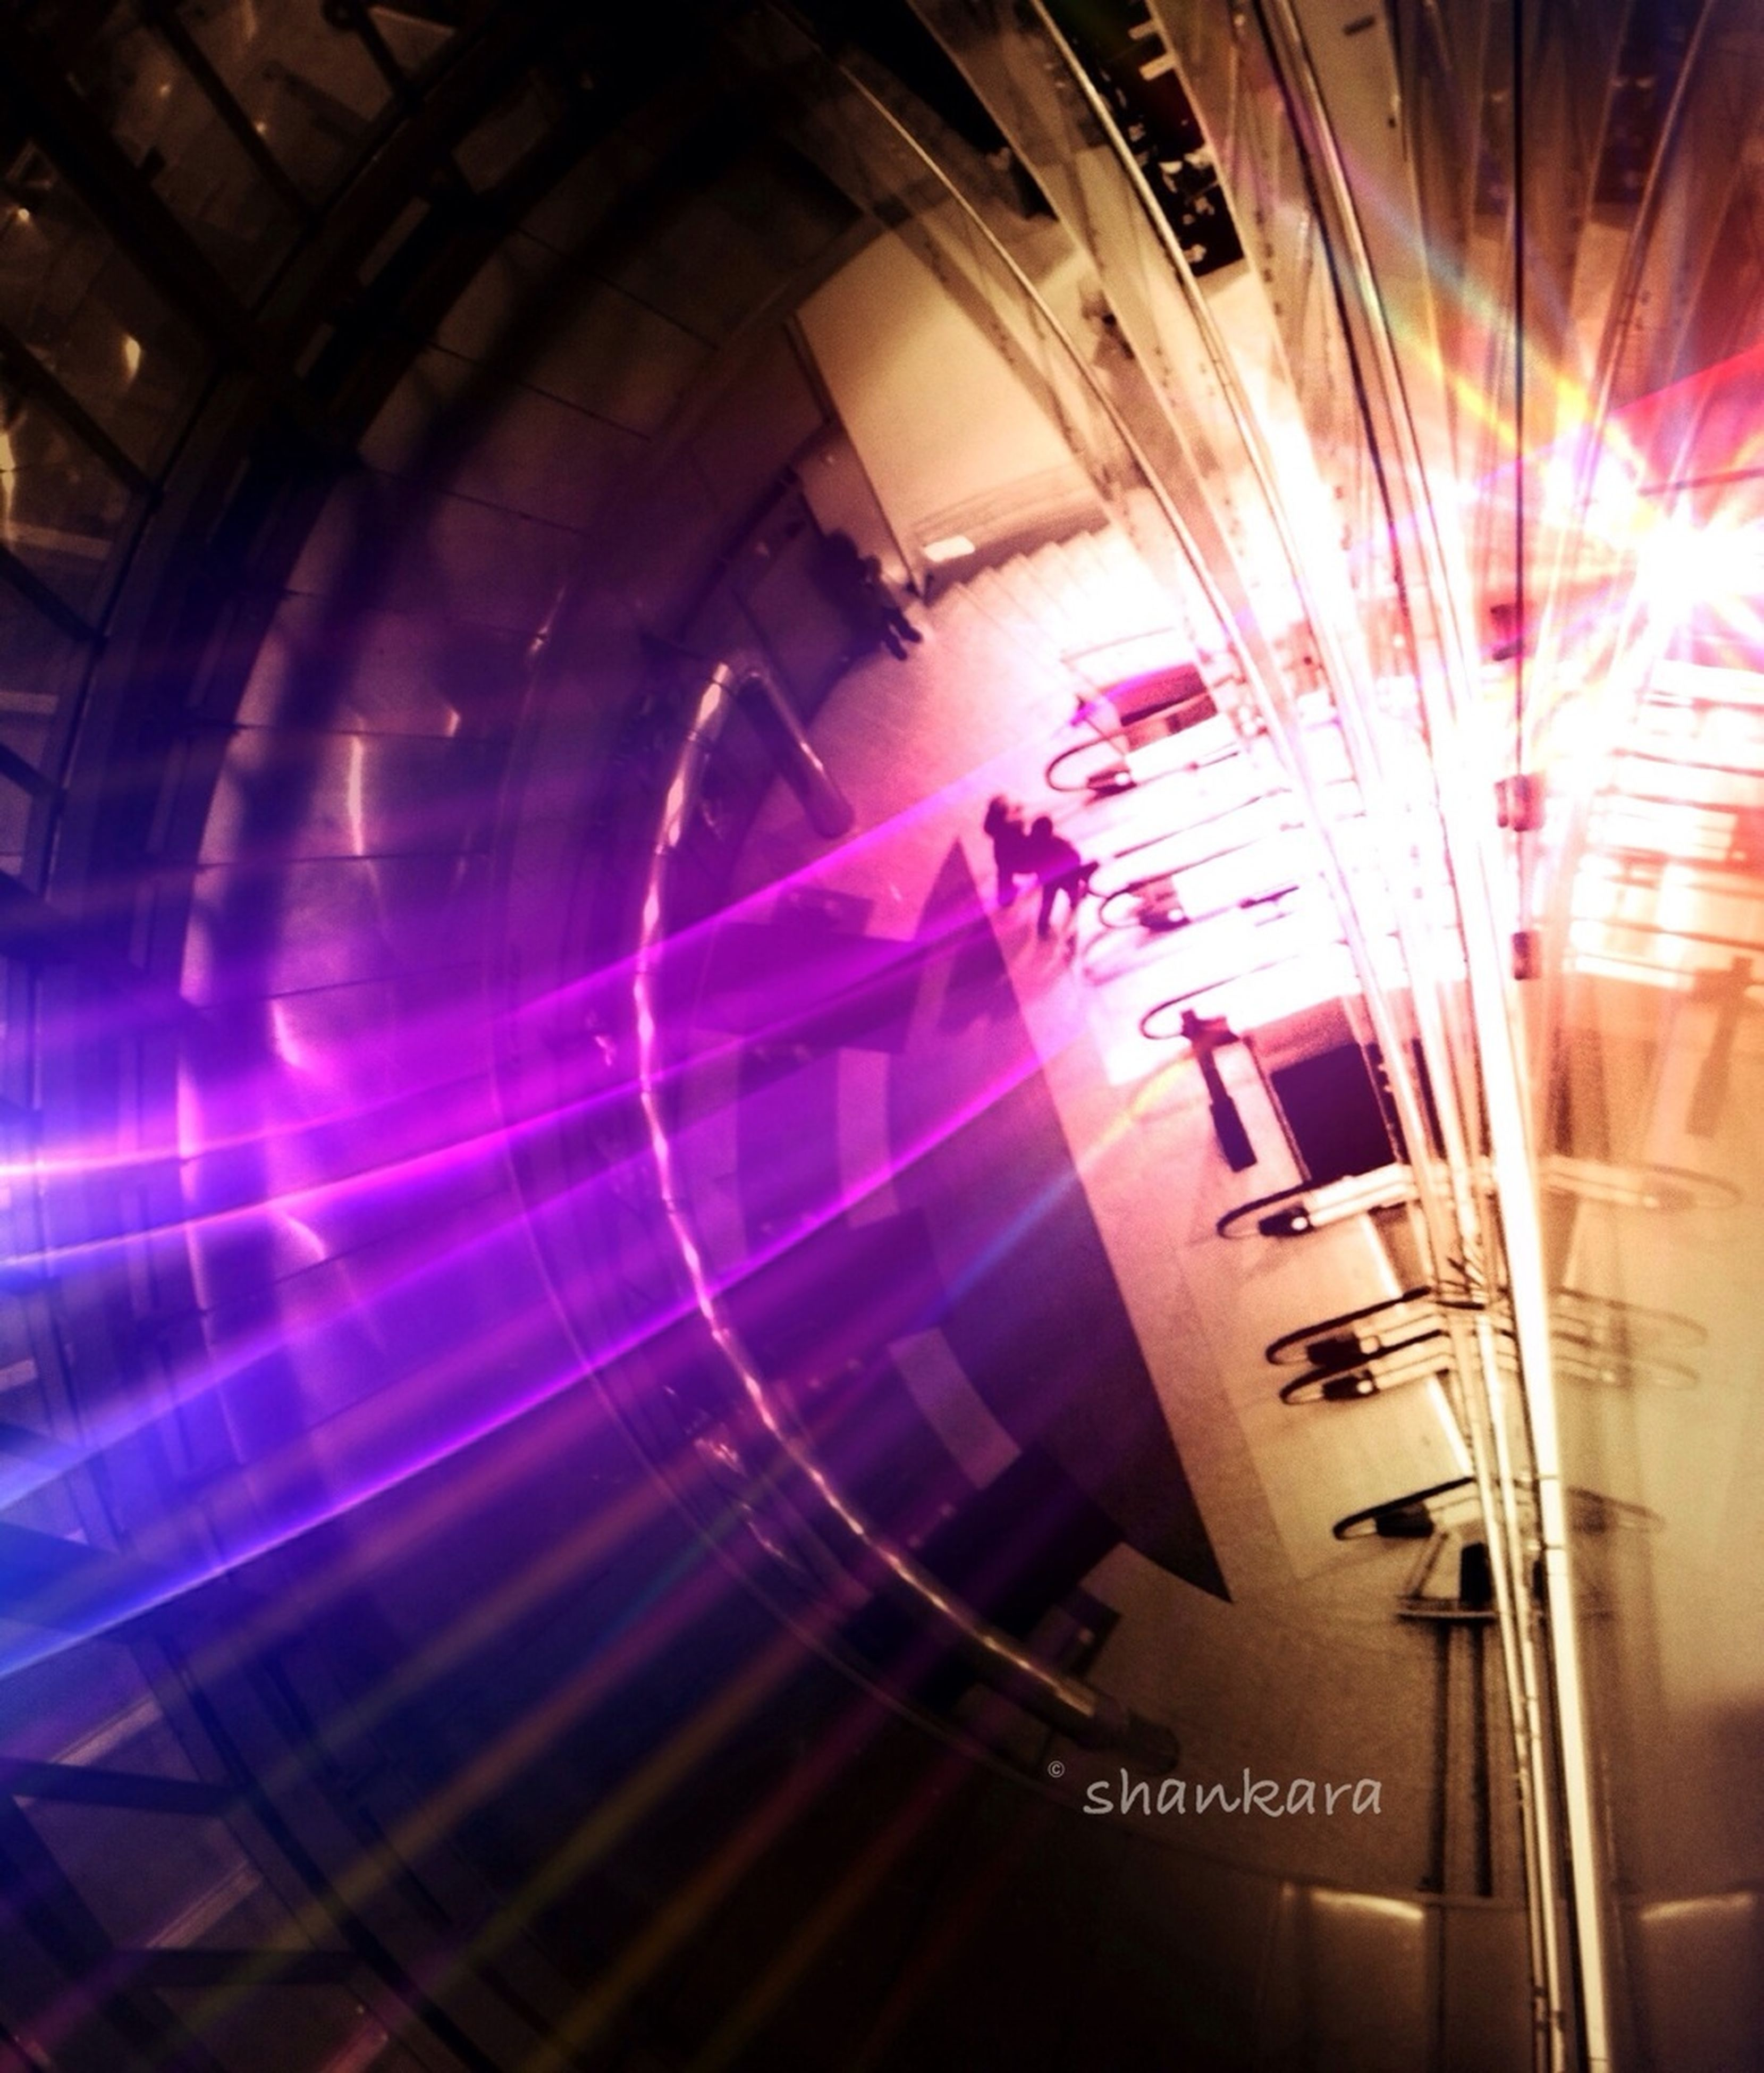 illuminated, blurred motion, long exposure, motion, transportation, night, indoors, speed, lens flare, light - natural phenomenon, light trail, glowing, multi colored, lighting equipment, built structure, architecture, city, on the move, light beam, modern